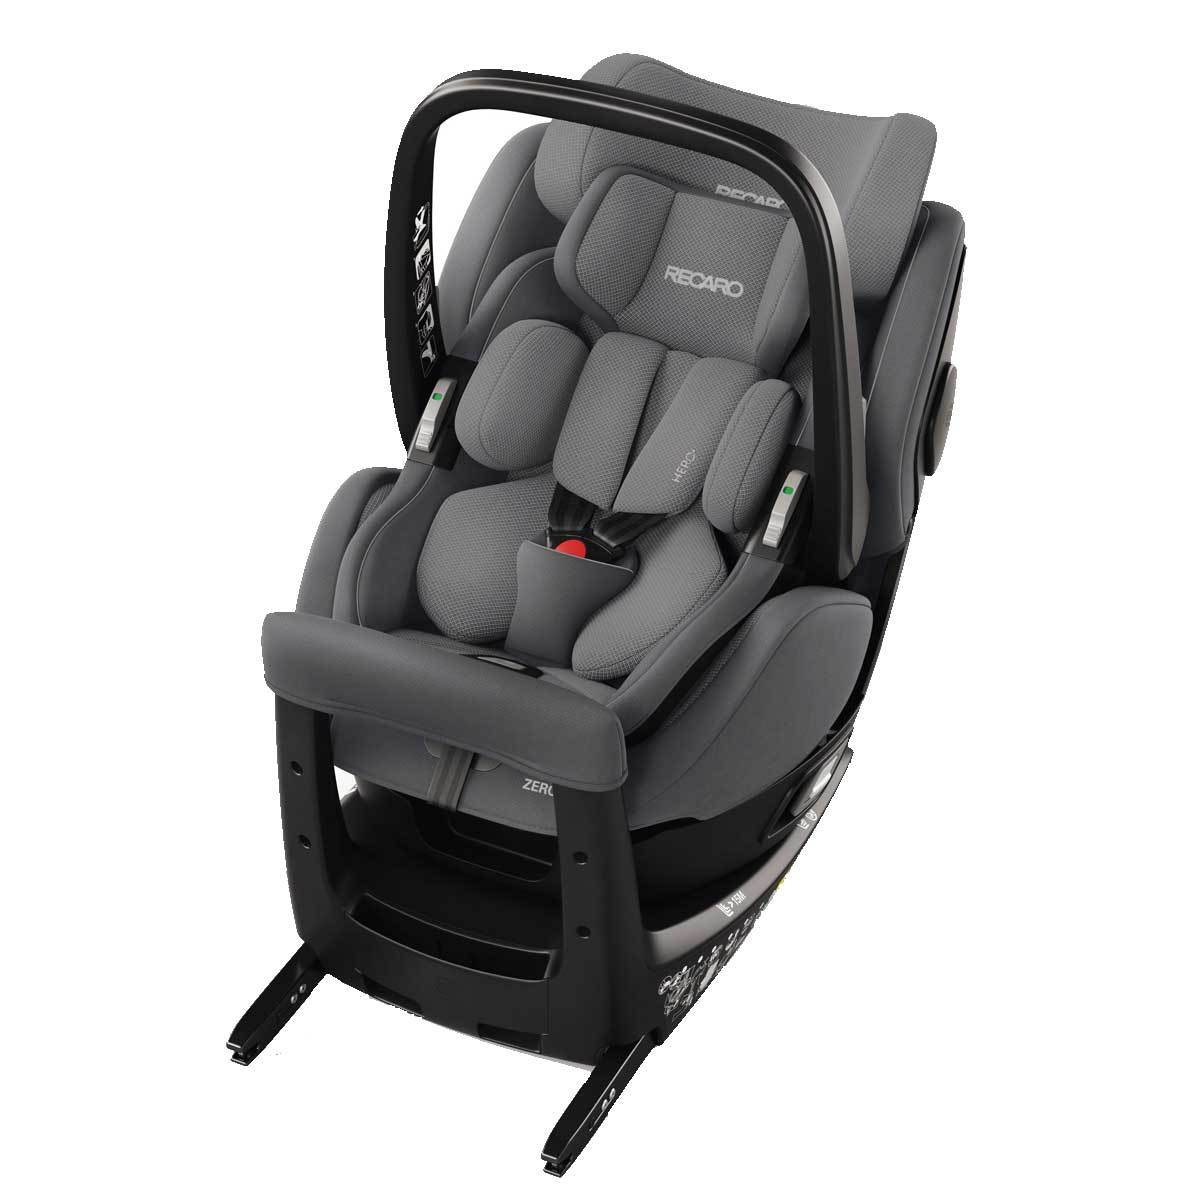 recaro si ge auto zero 1 elite i size groupe 0 1 aluminium grey si ge auto et coque recaro. Black Bedroom Furniture Sets. Home Design Ideas